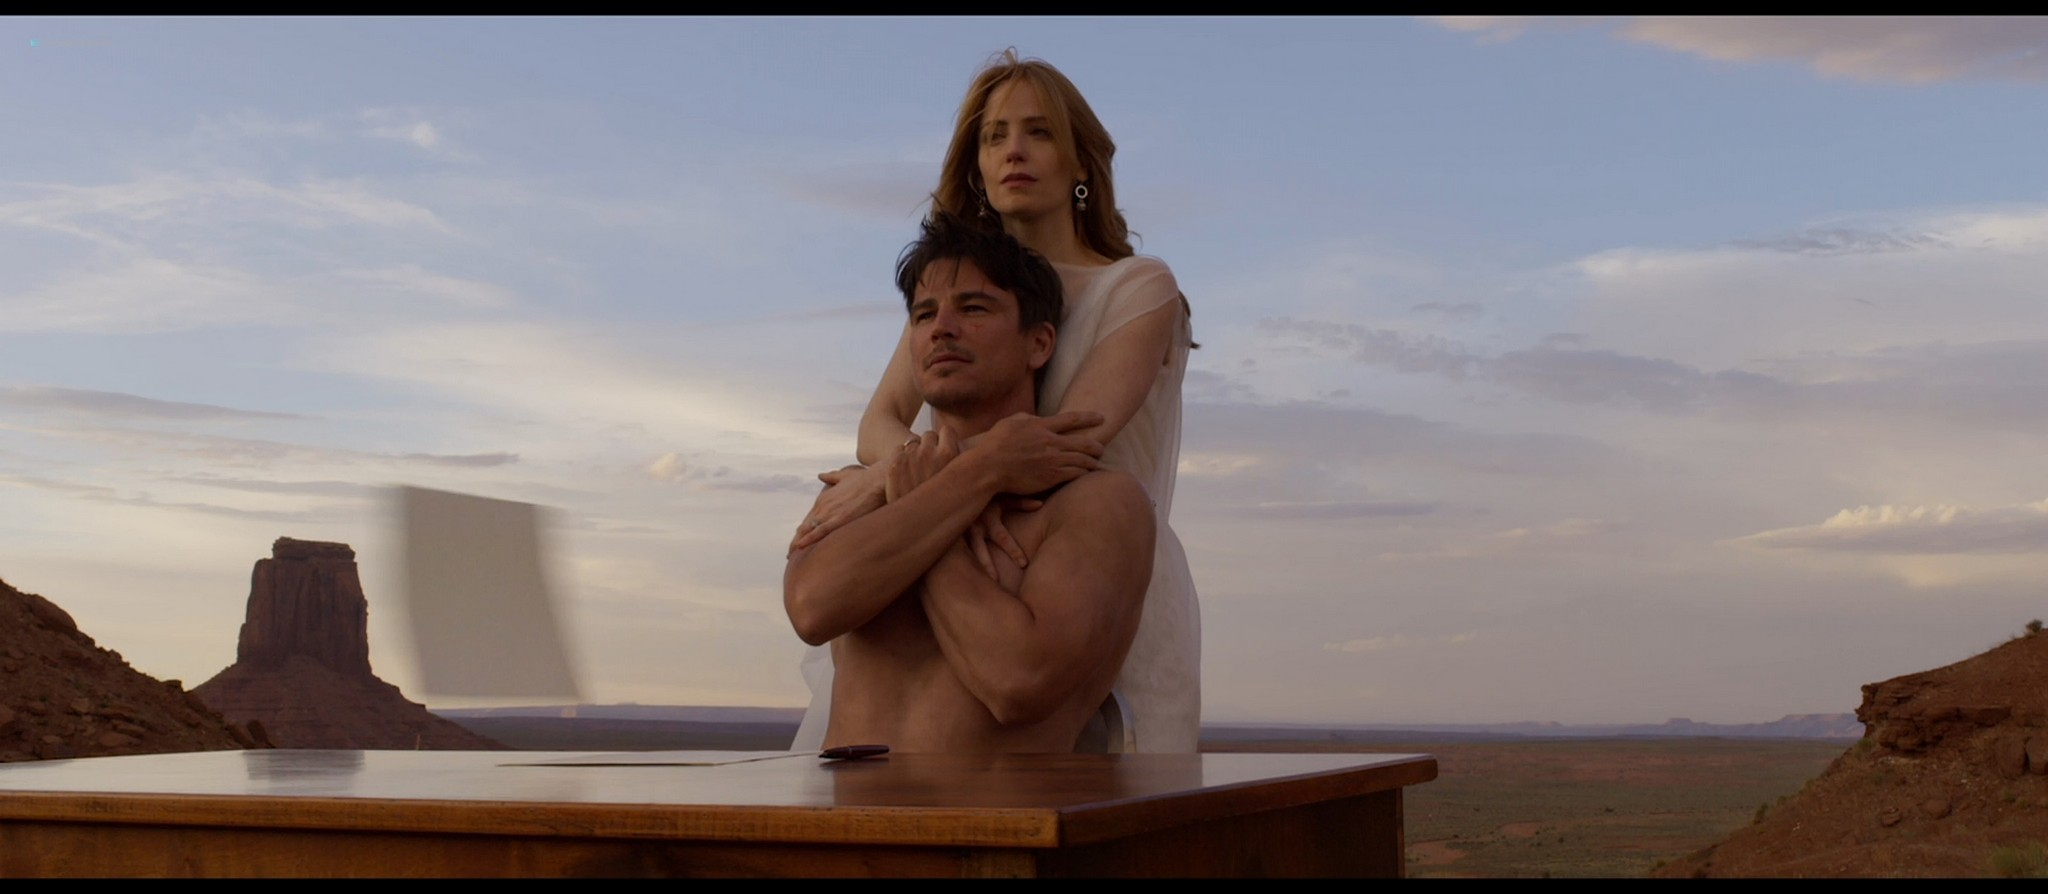 Bérénice Marlohe nude Jaime Ray Newman sexy Owee Rae butt naked - Valley of the Gods (2019) HD 1080p BluRay (2)